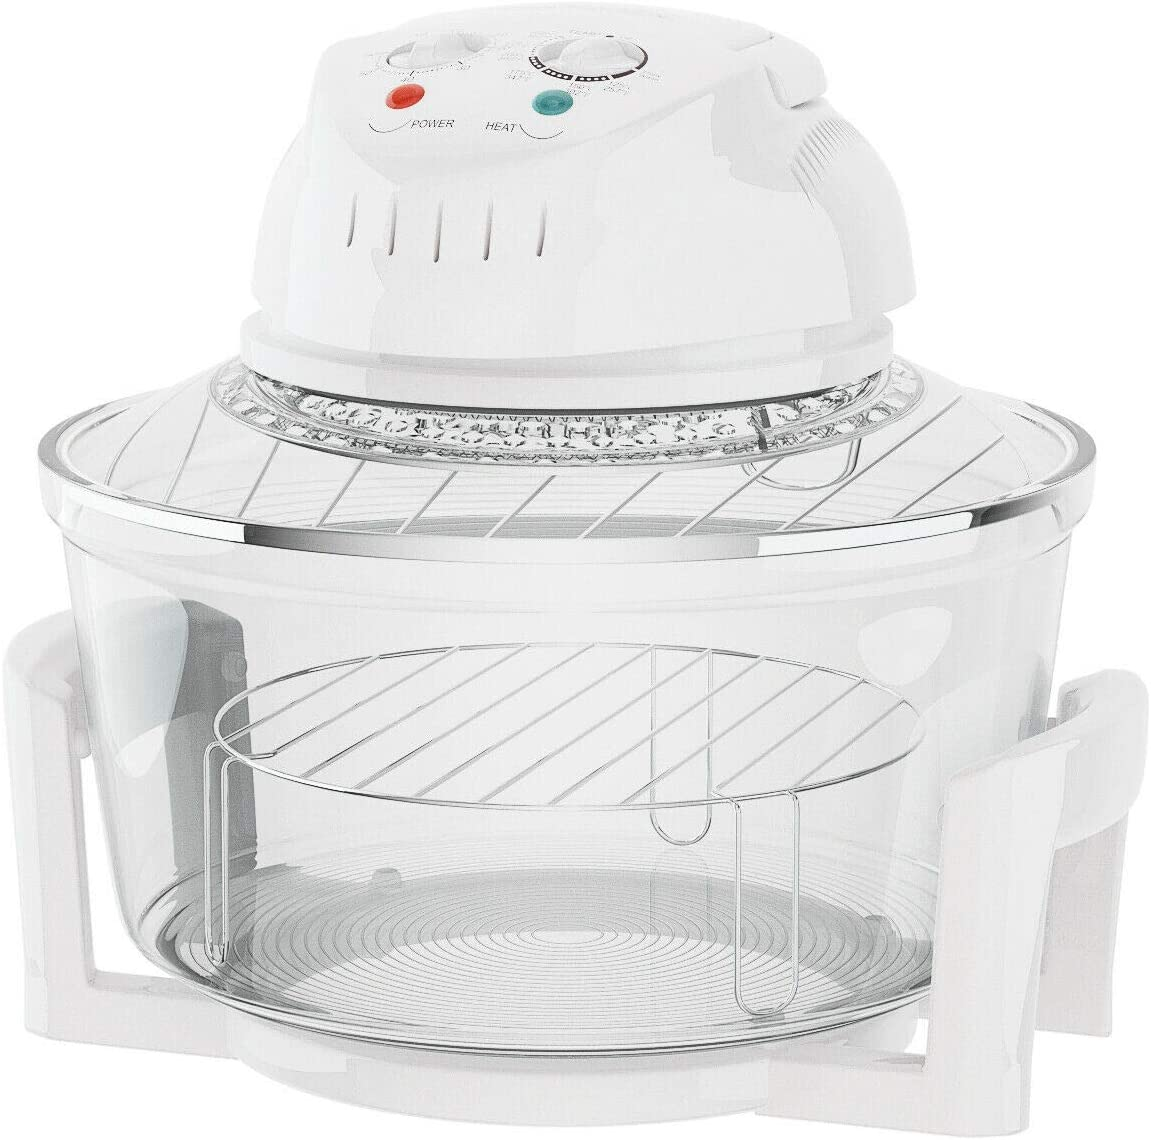 JF World 1300W Infrared Halogen Convection Turbo Oven